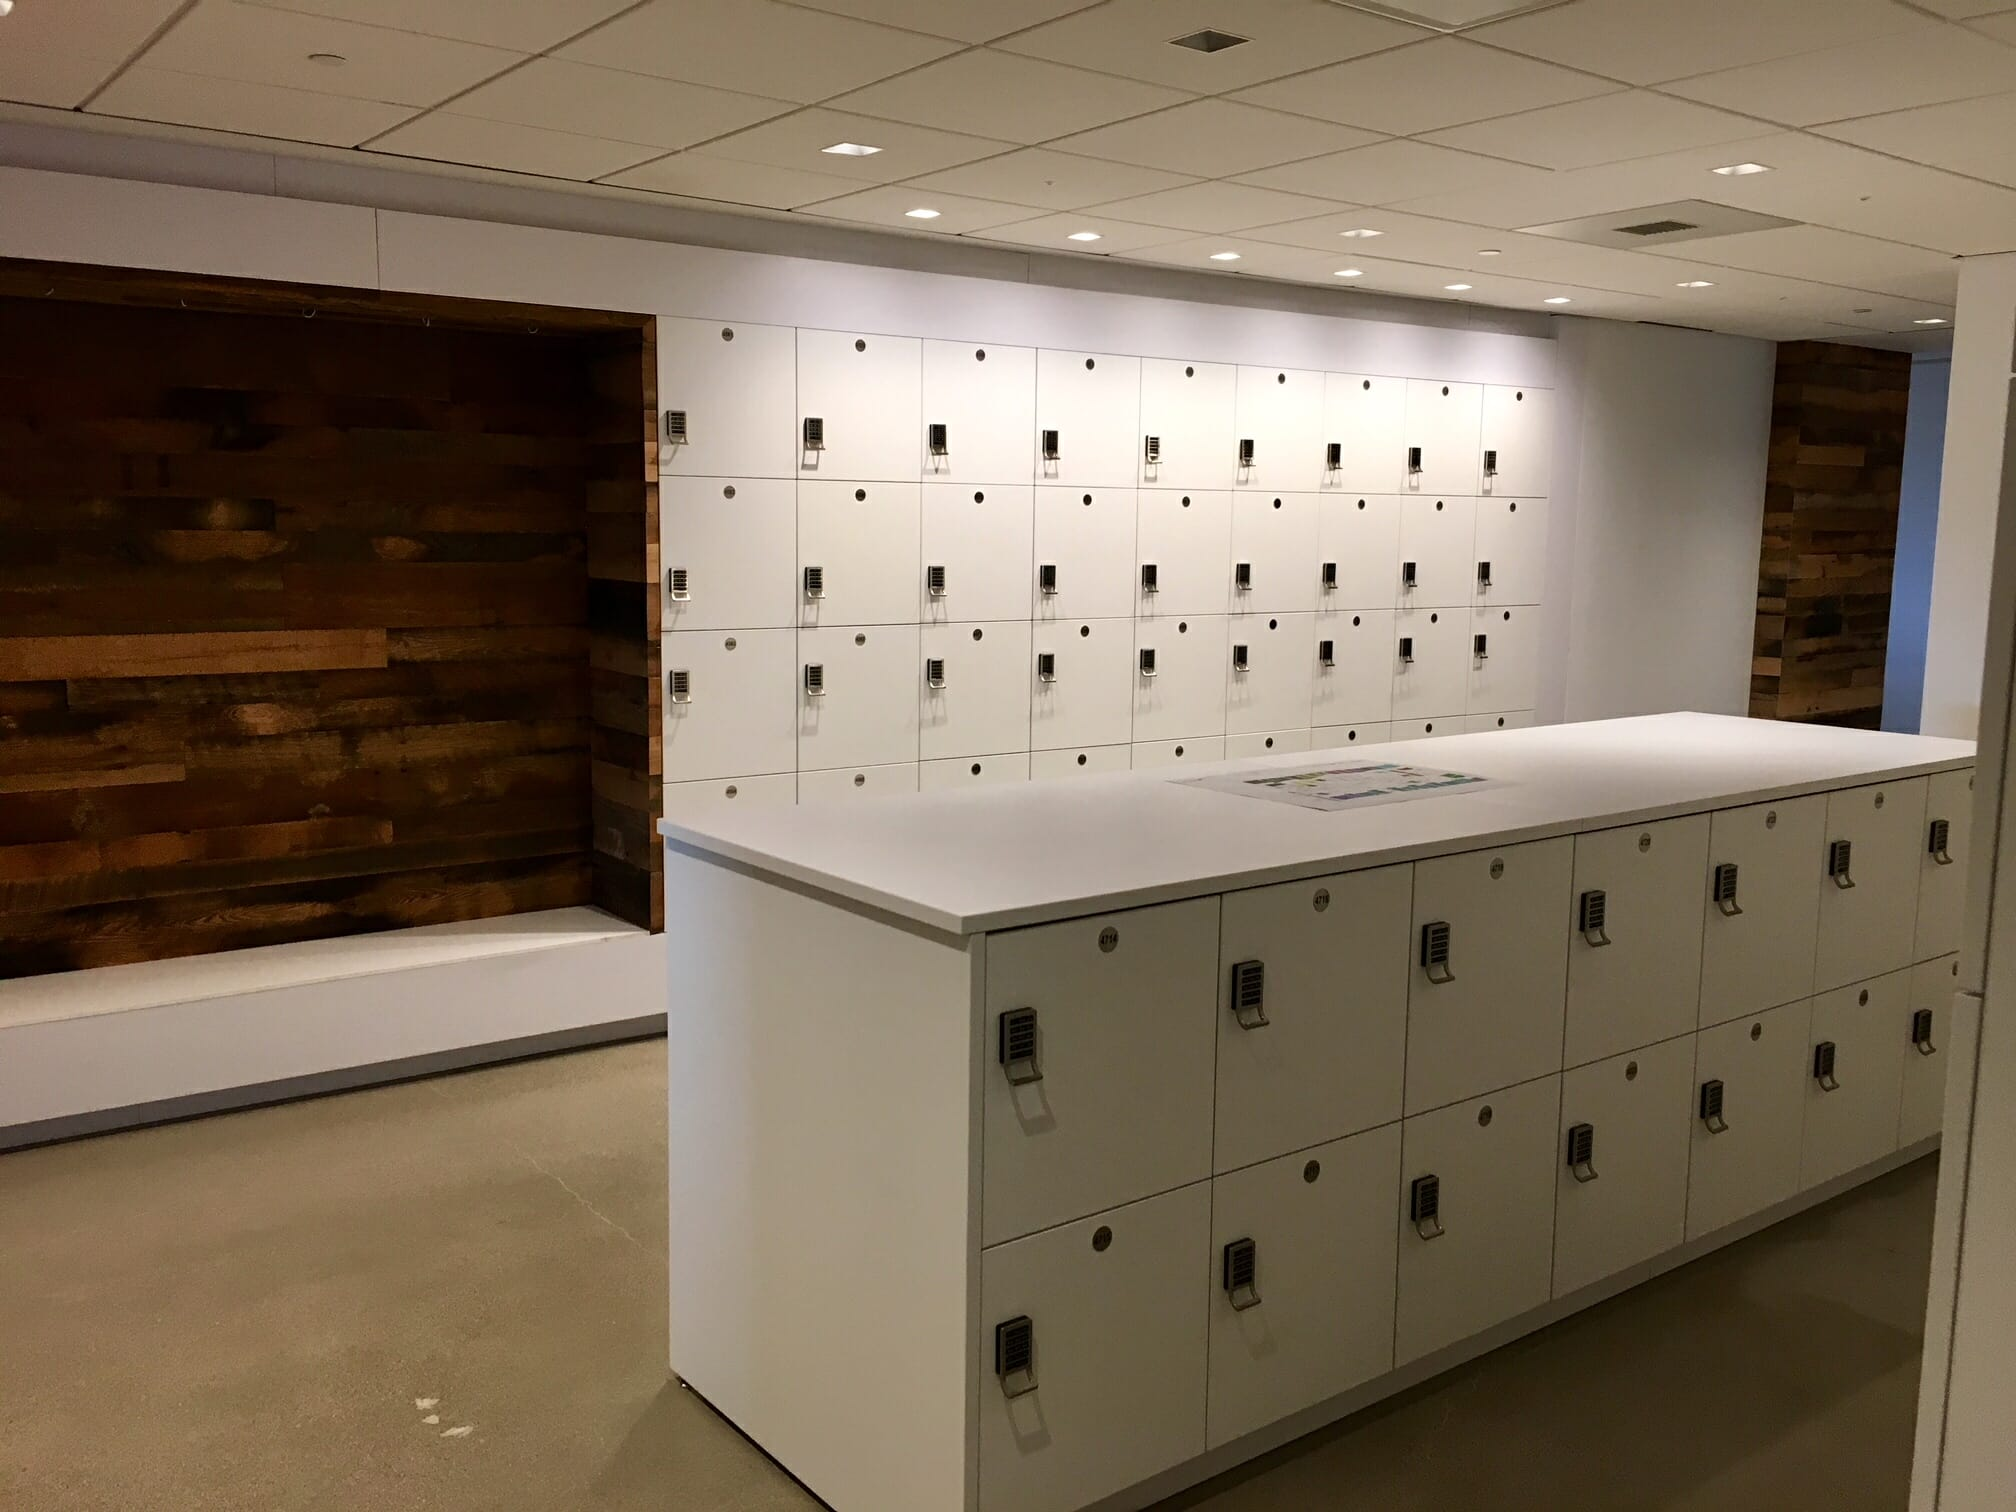 Laminate Day Use Lockers in island